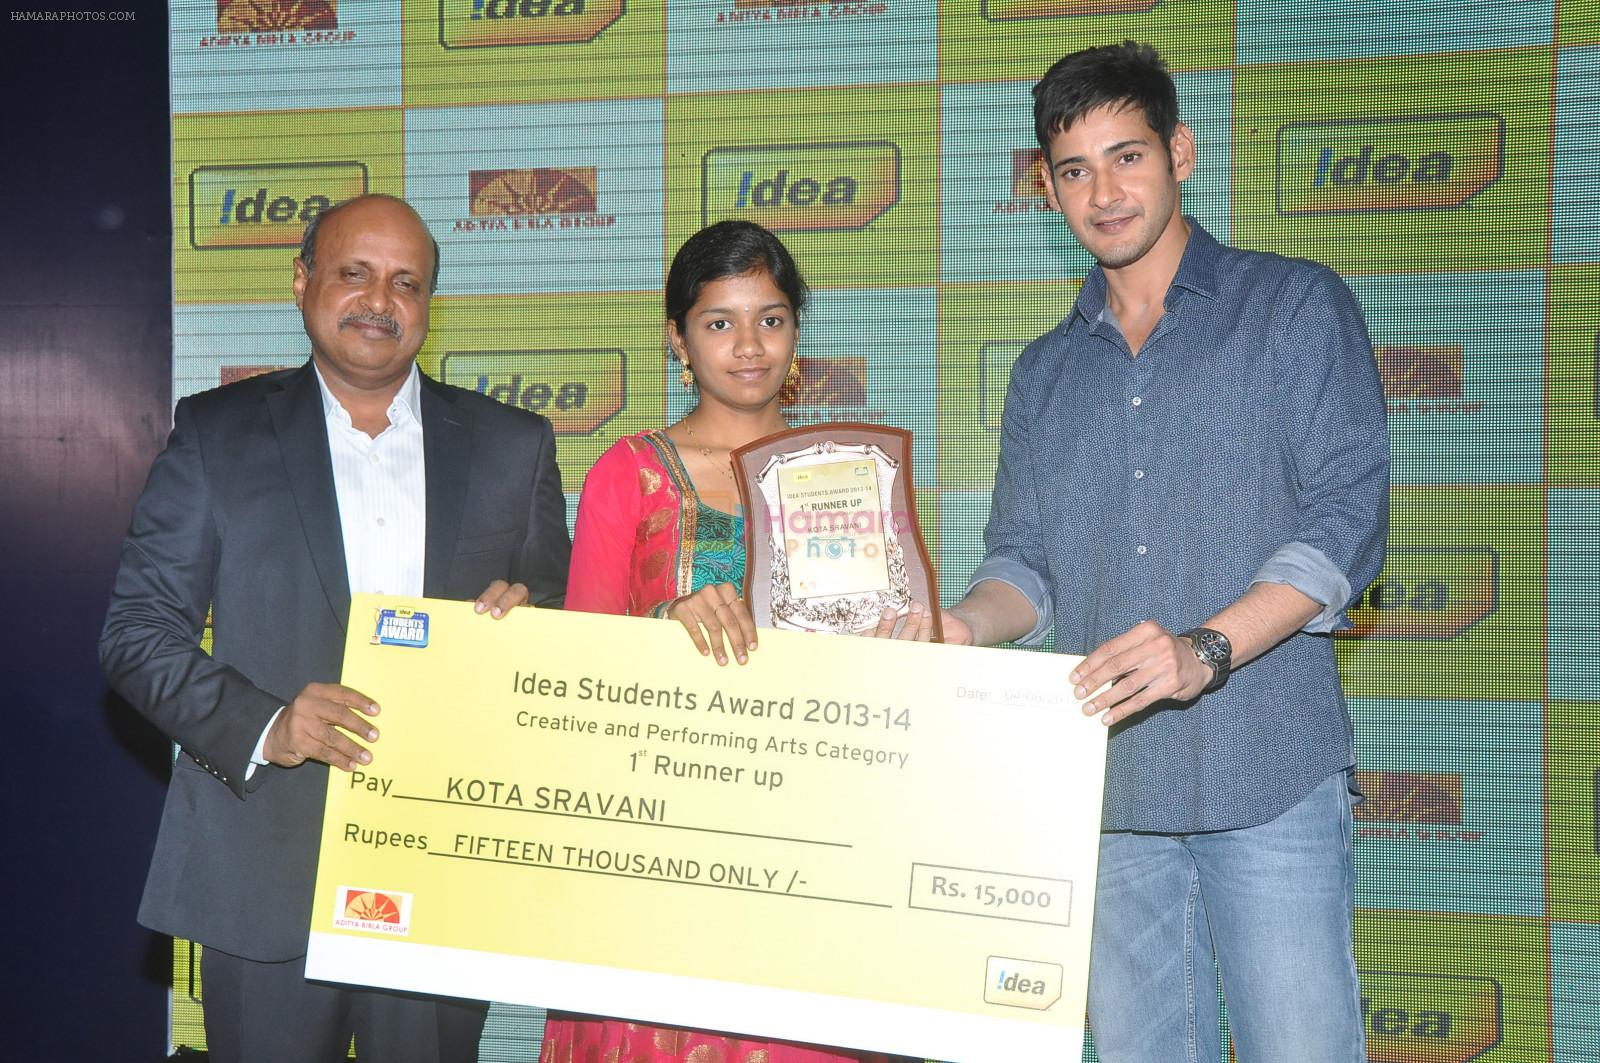 Mahesh babu at Idea Students awards 2014 on 4th June 2014